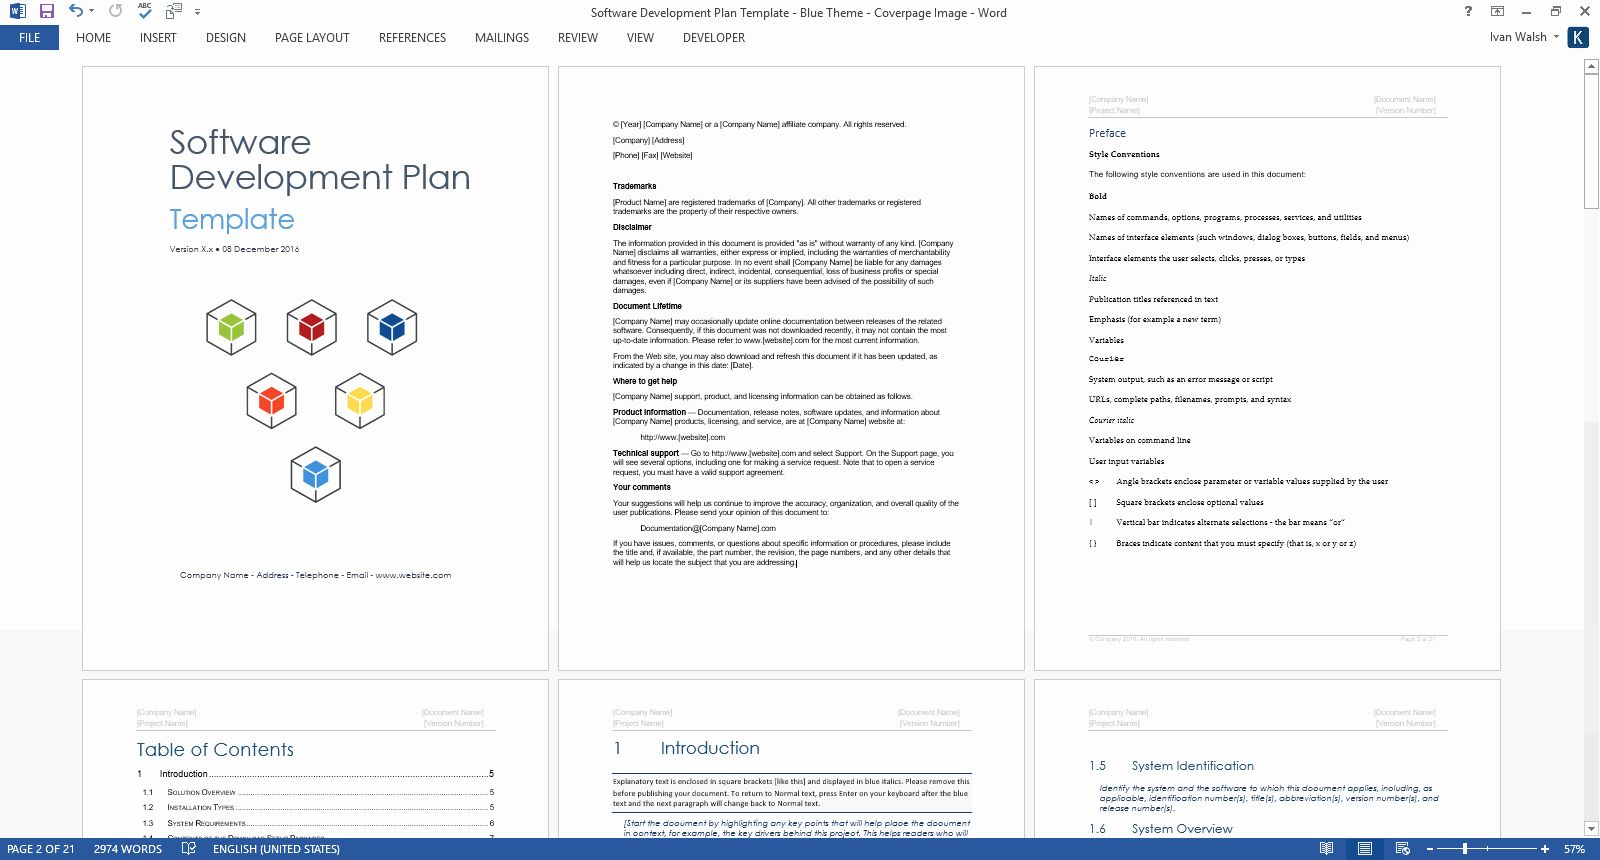 Design And Development Plan Template Best Of Software Development Lifecycle Templates Ms Word Project Proposal Template Proposal Templates Software Projects